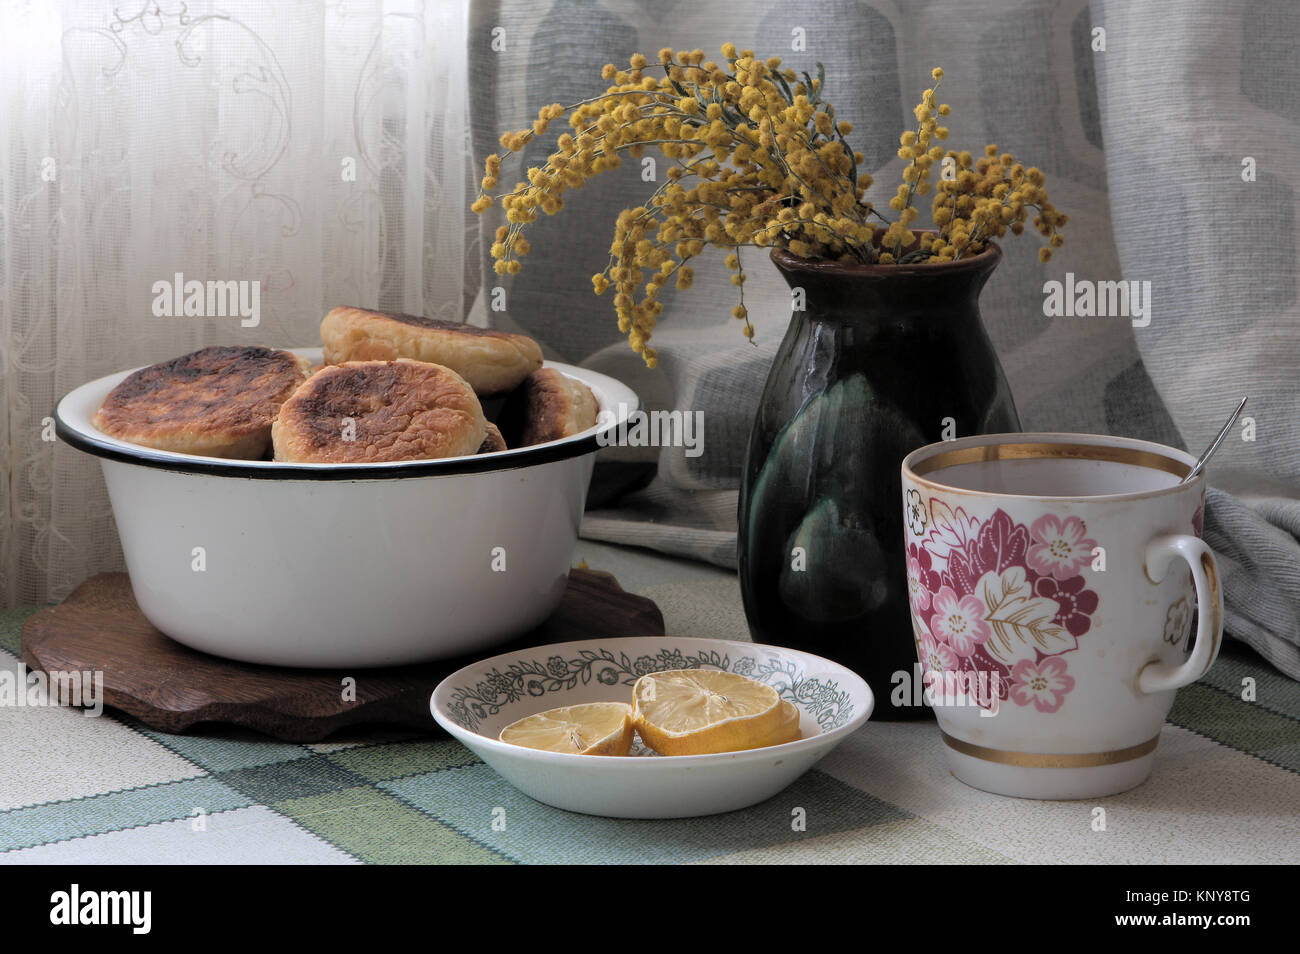 vintage still life with cheese cake and mimosa - Stock Image